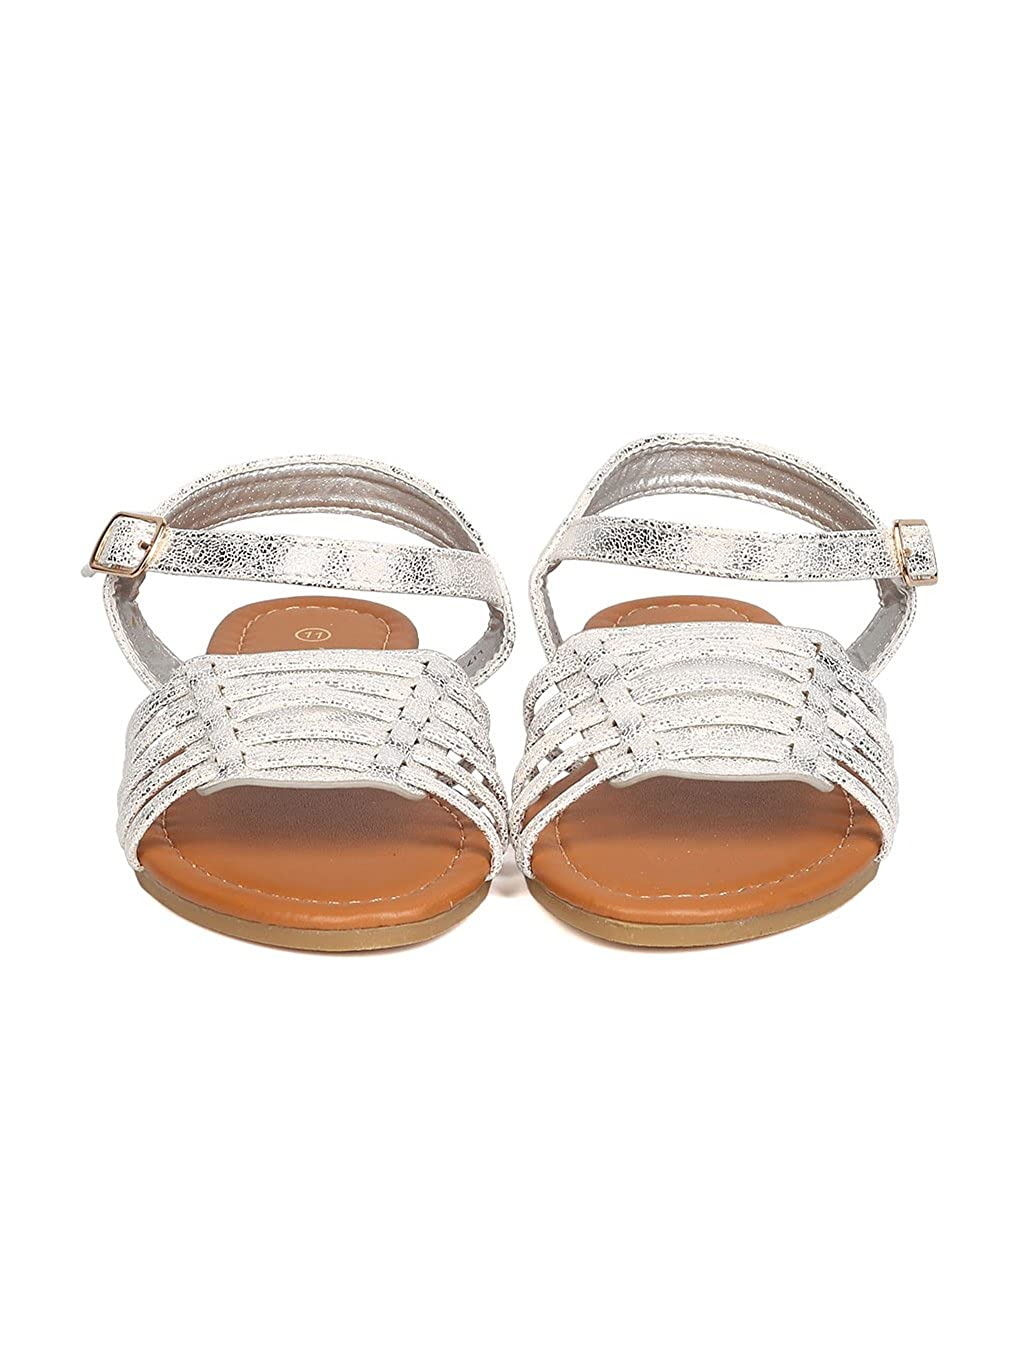 Girls Metallic Leatherette Open Toe Caged Ankle Strap Flat Sandal GC08